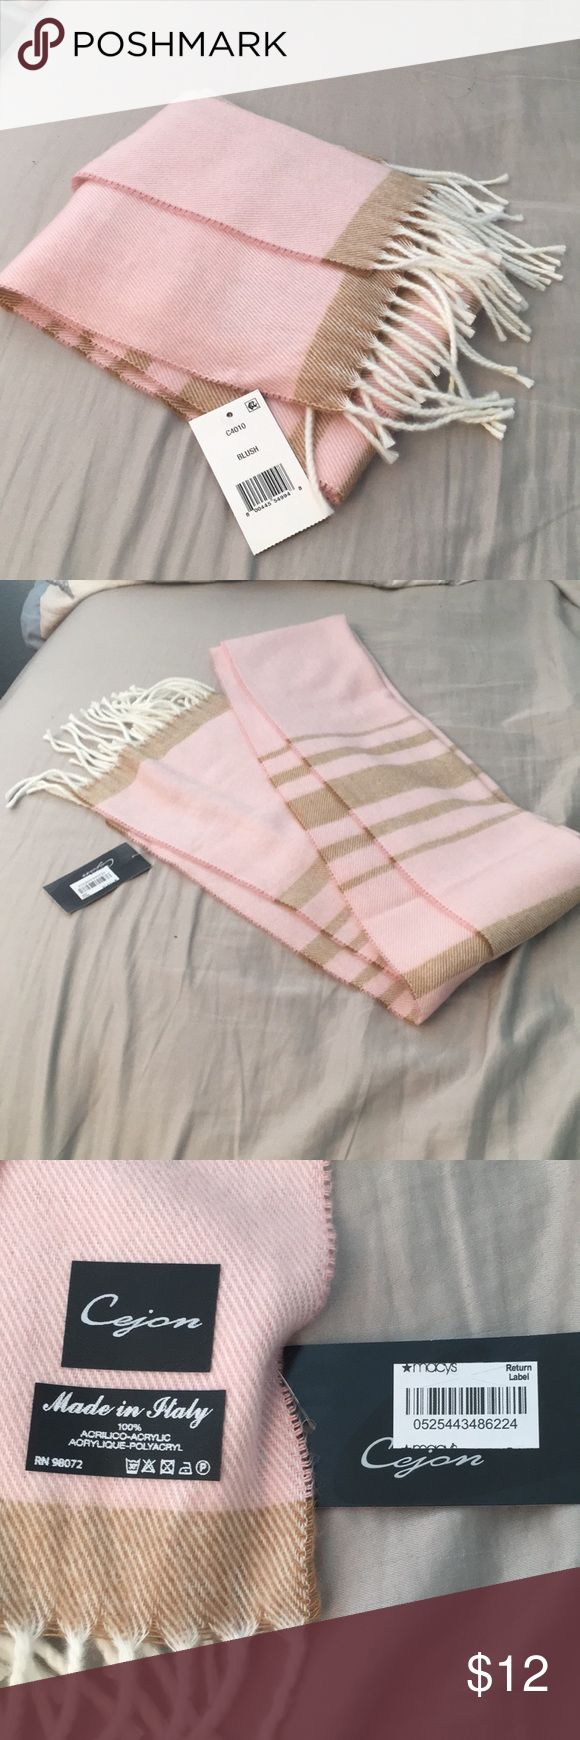 Blush pink and tan scarf with white tassles. NWT Pink and light brown scarf with white tassels at the ends. Super soft and warm fabric! Never been worn, new with tags! Macy's Accessories Scarves & Wraps